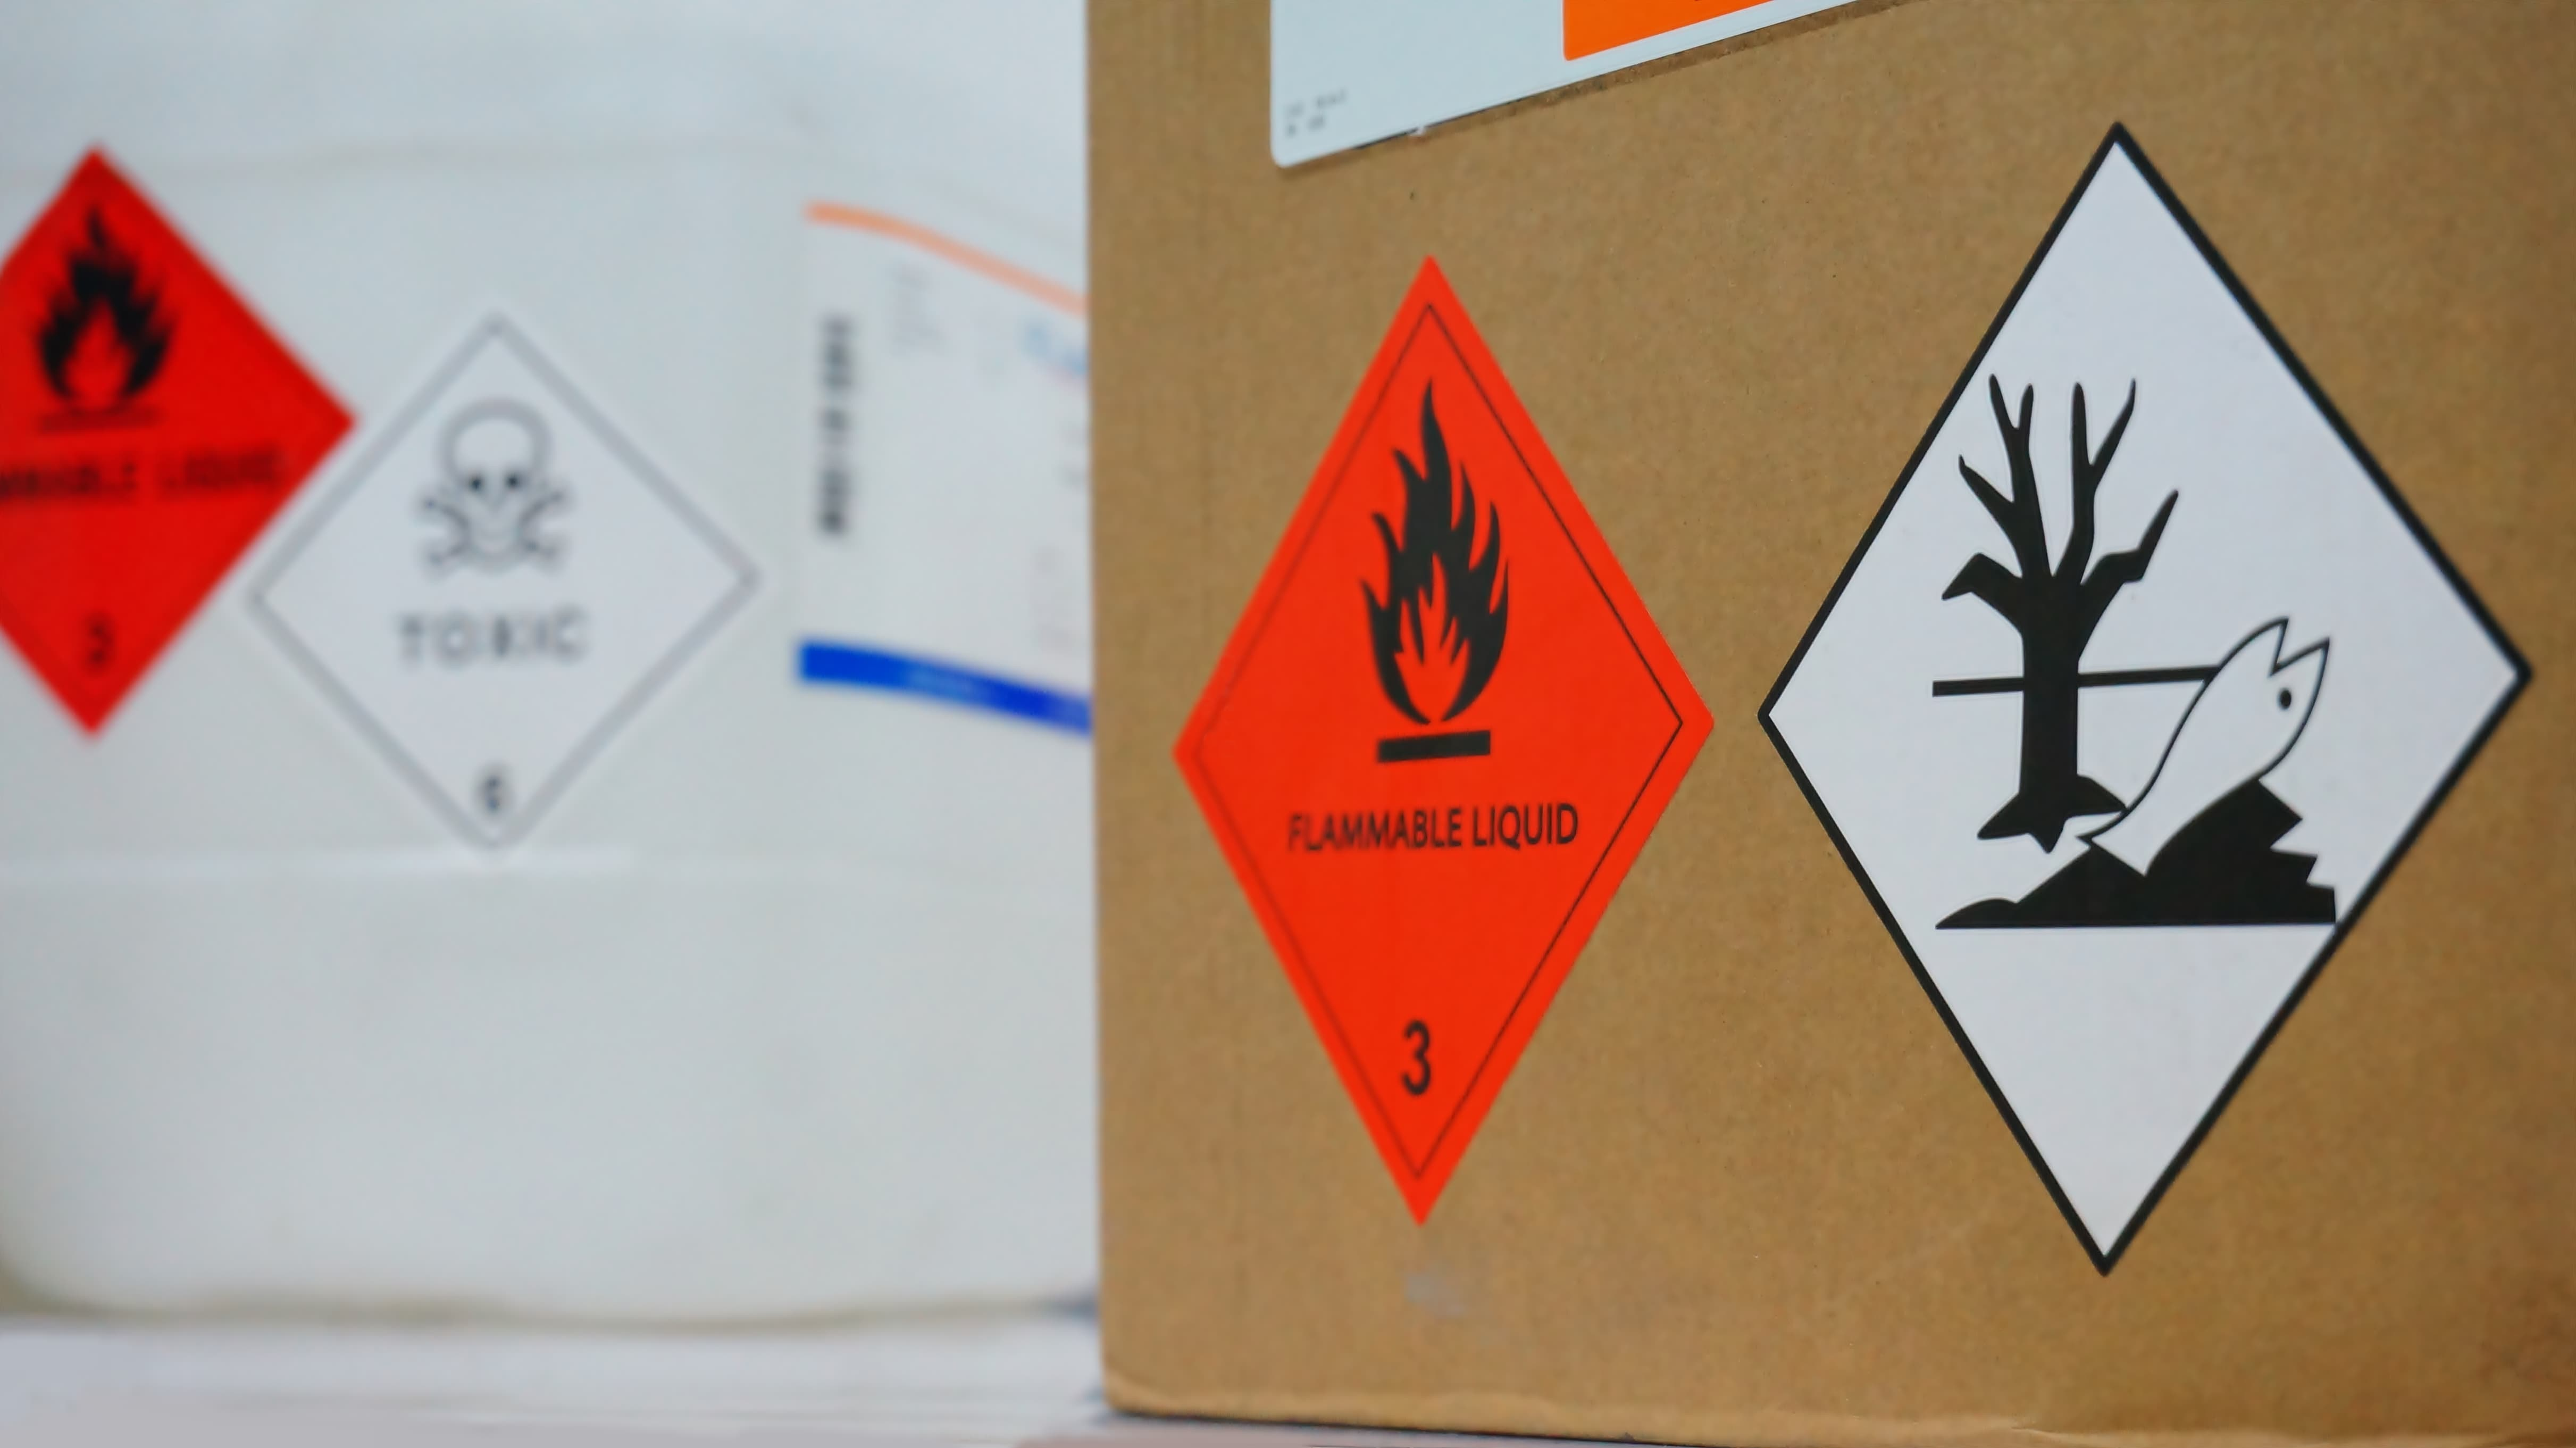 Identifying chemical health hazards from Safety Data Sheets (SDSs)